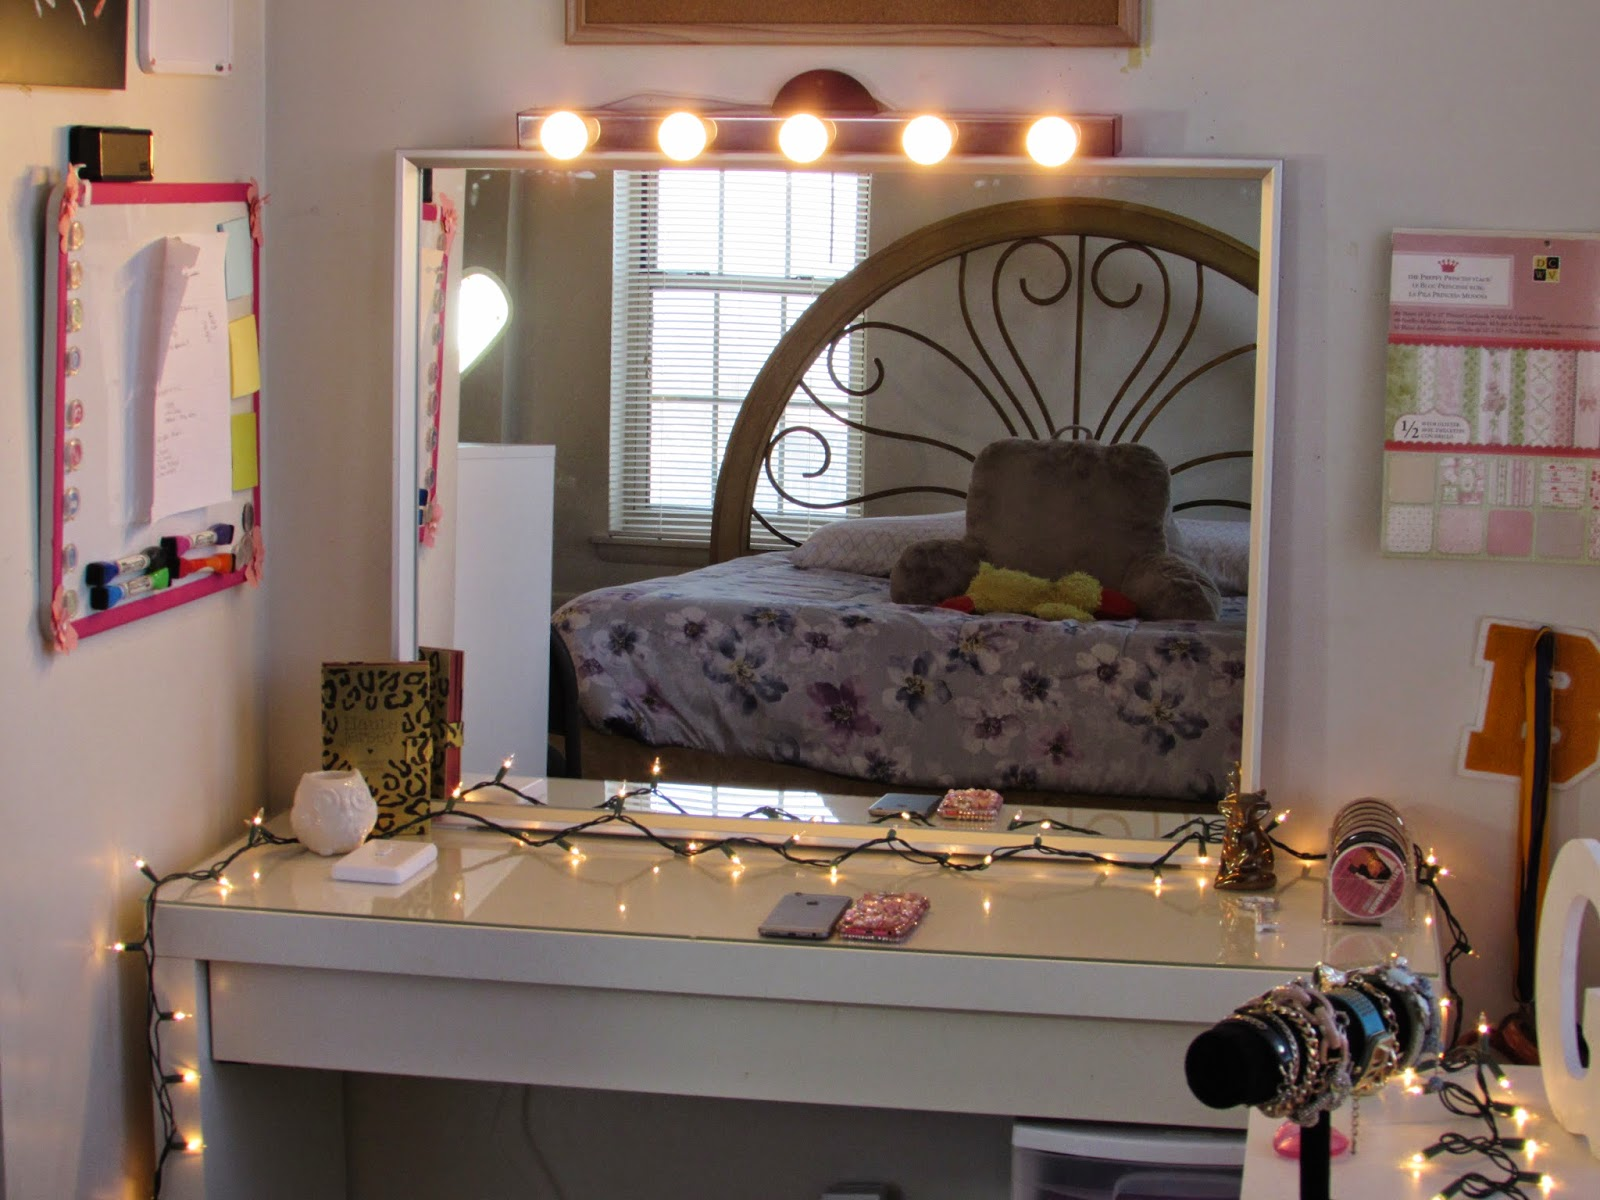 Hollywood Vanity Lights Nz : Beauty By Genecia: DIY Hollywood Vanity Light Mirror DIY Room Decor Easy, Cheap, & NO DRILLING!